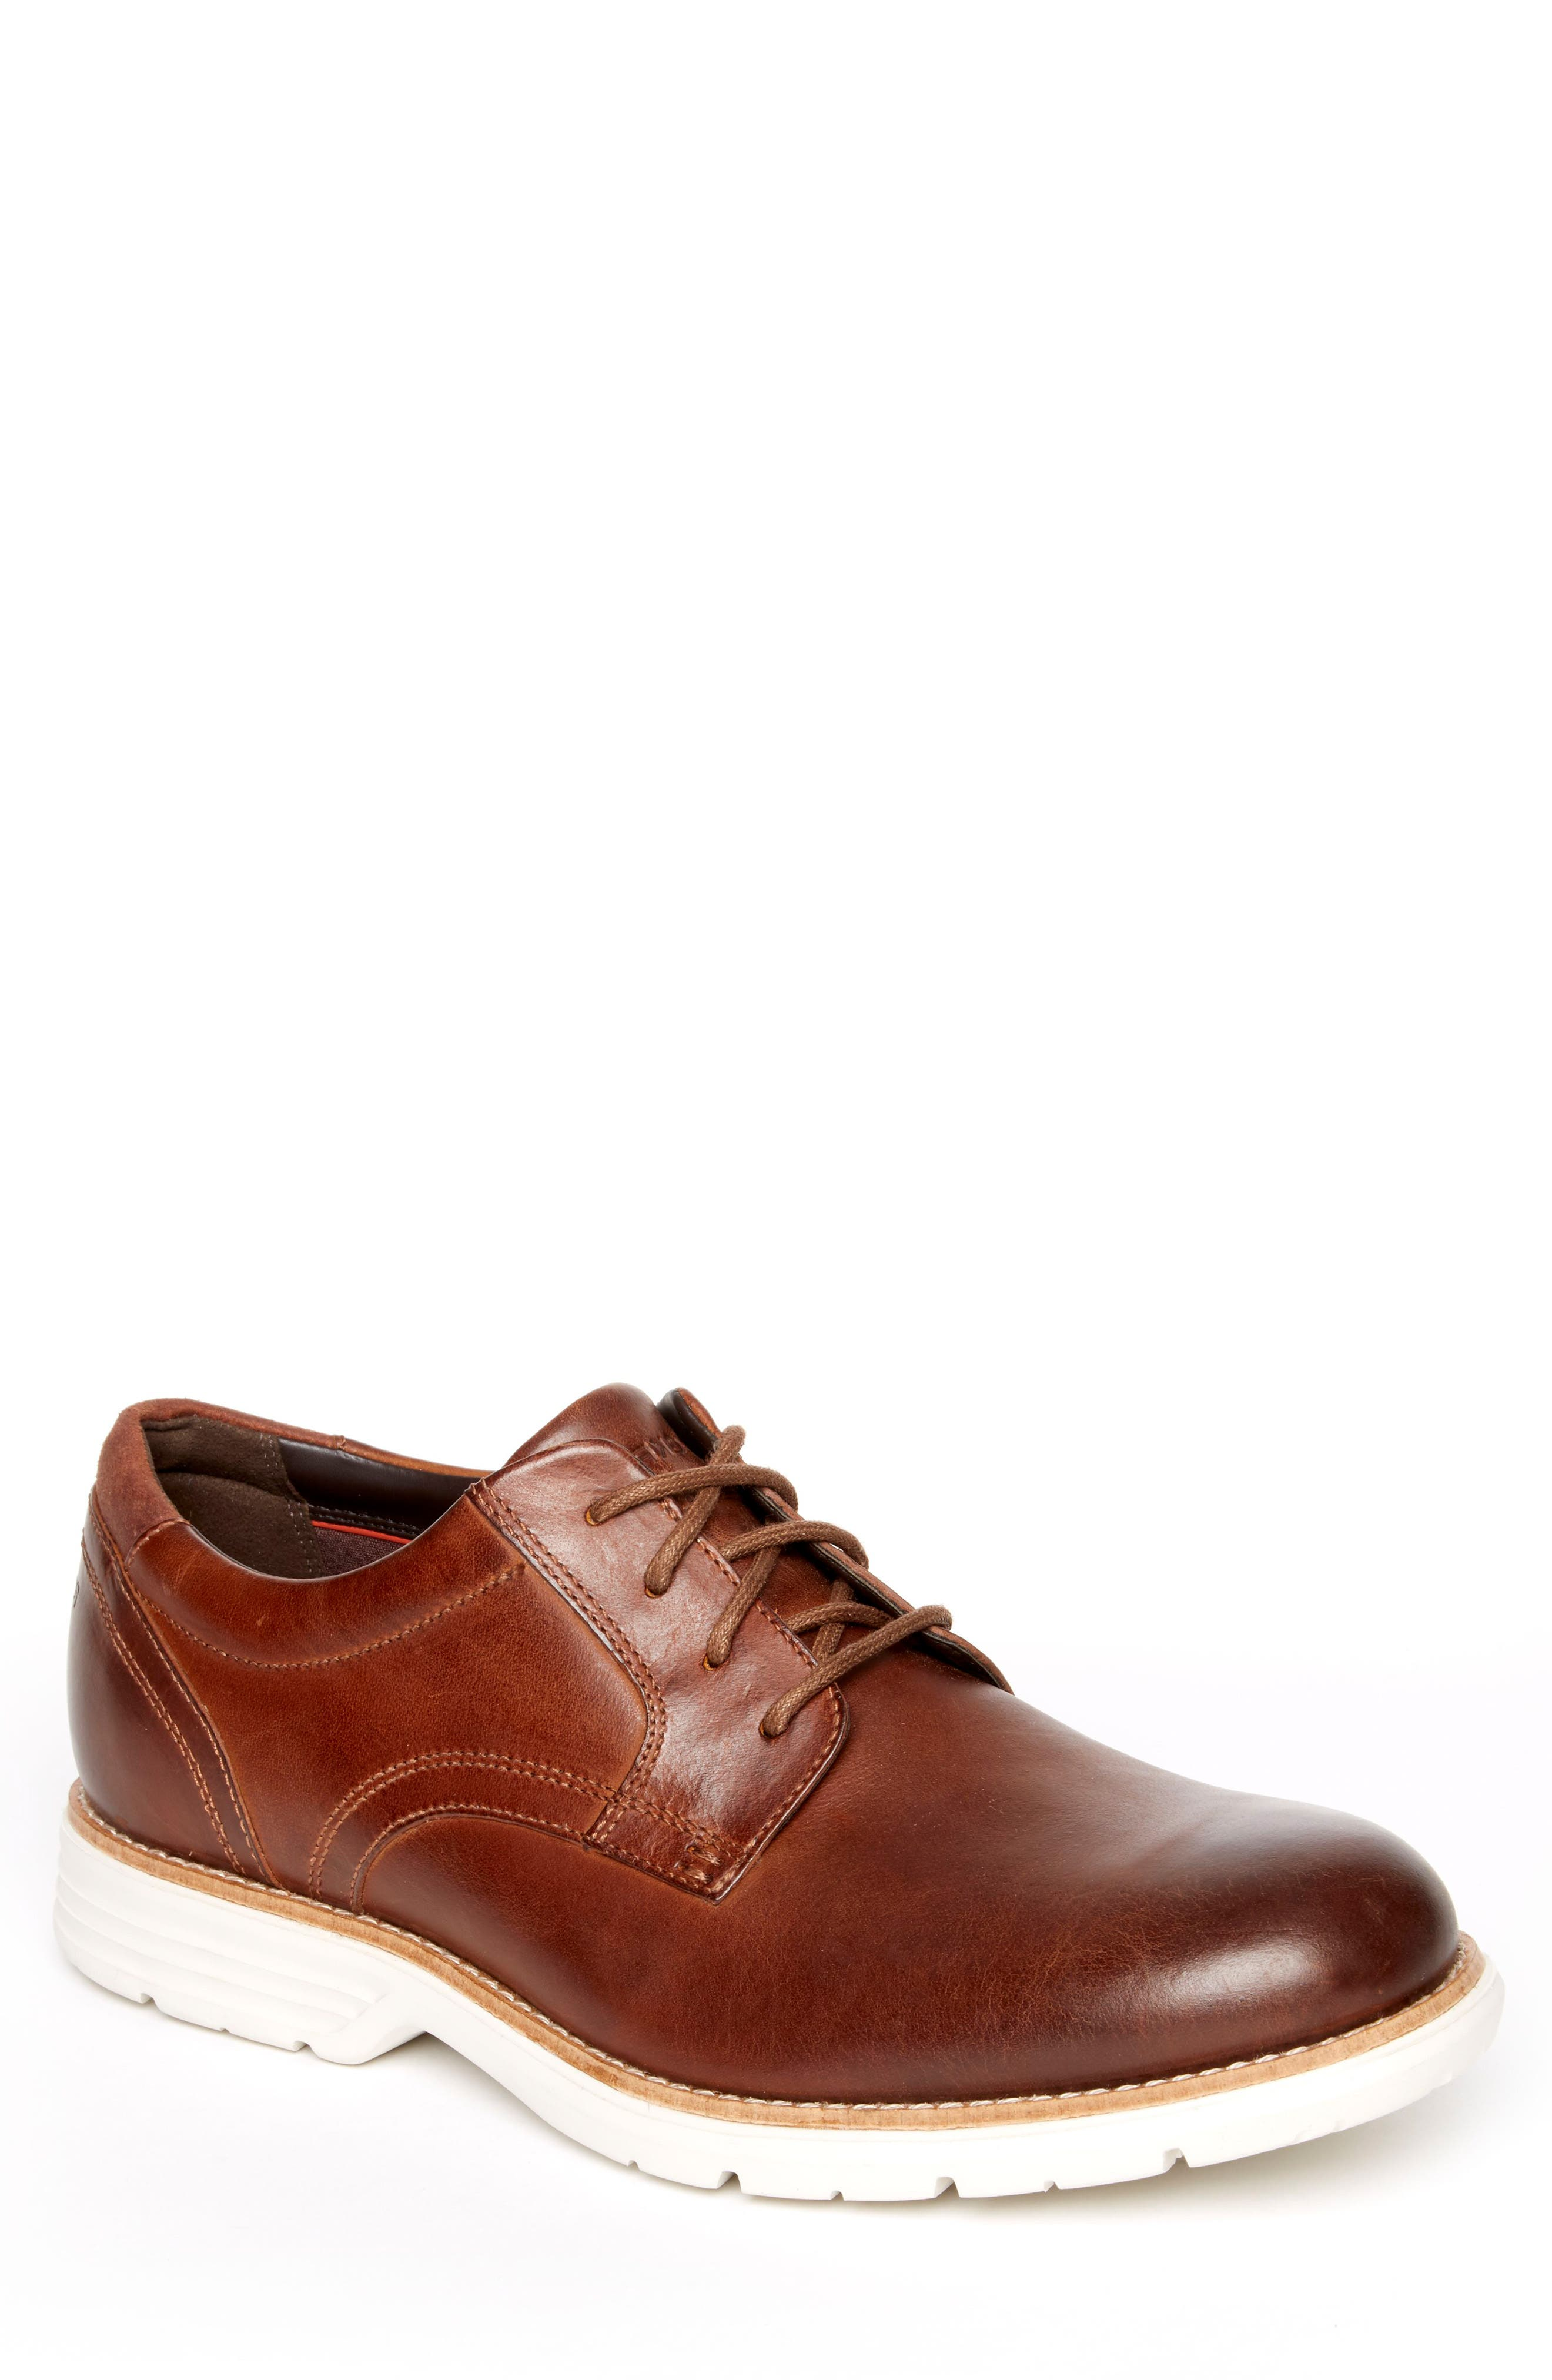 Total Motion Fusion Plain Toe Derby,                         Main,                         color, New Carmel Leather